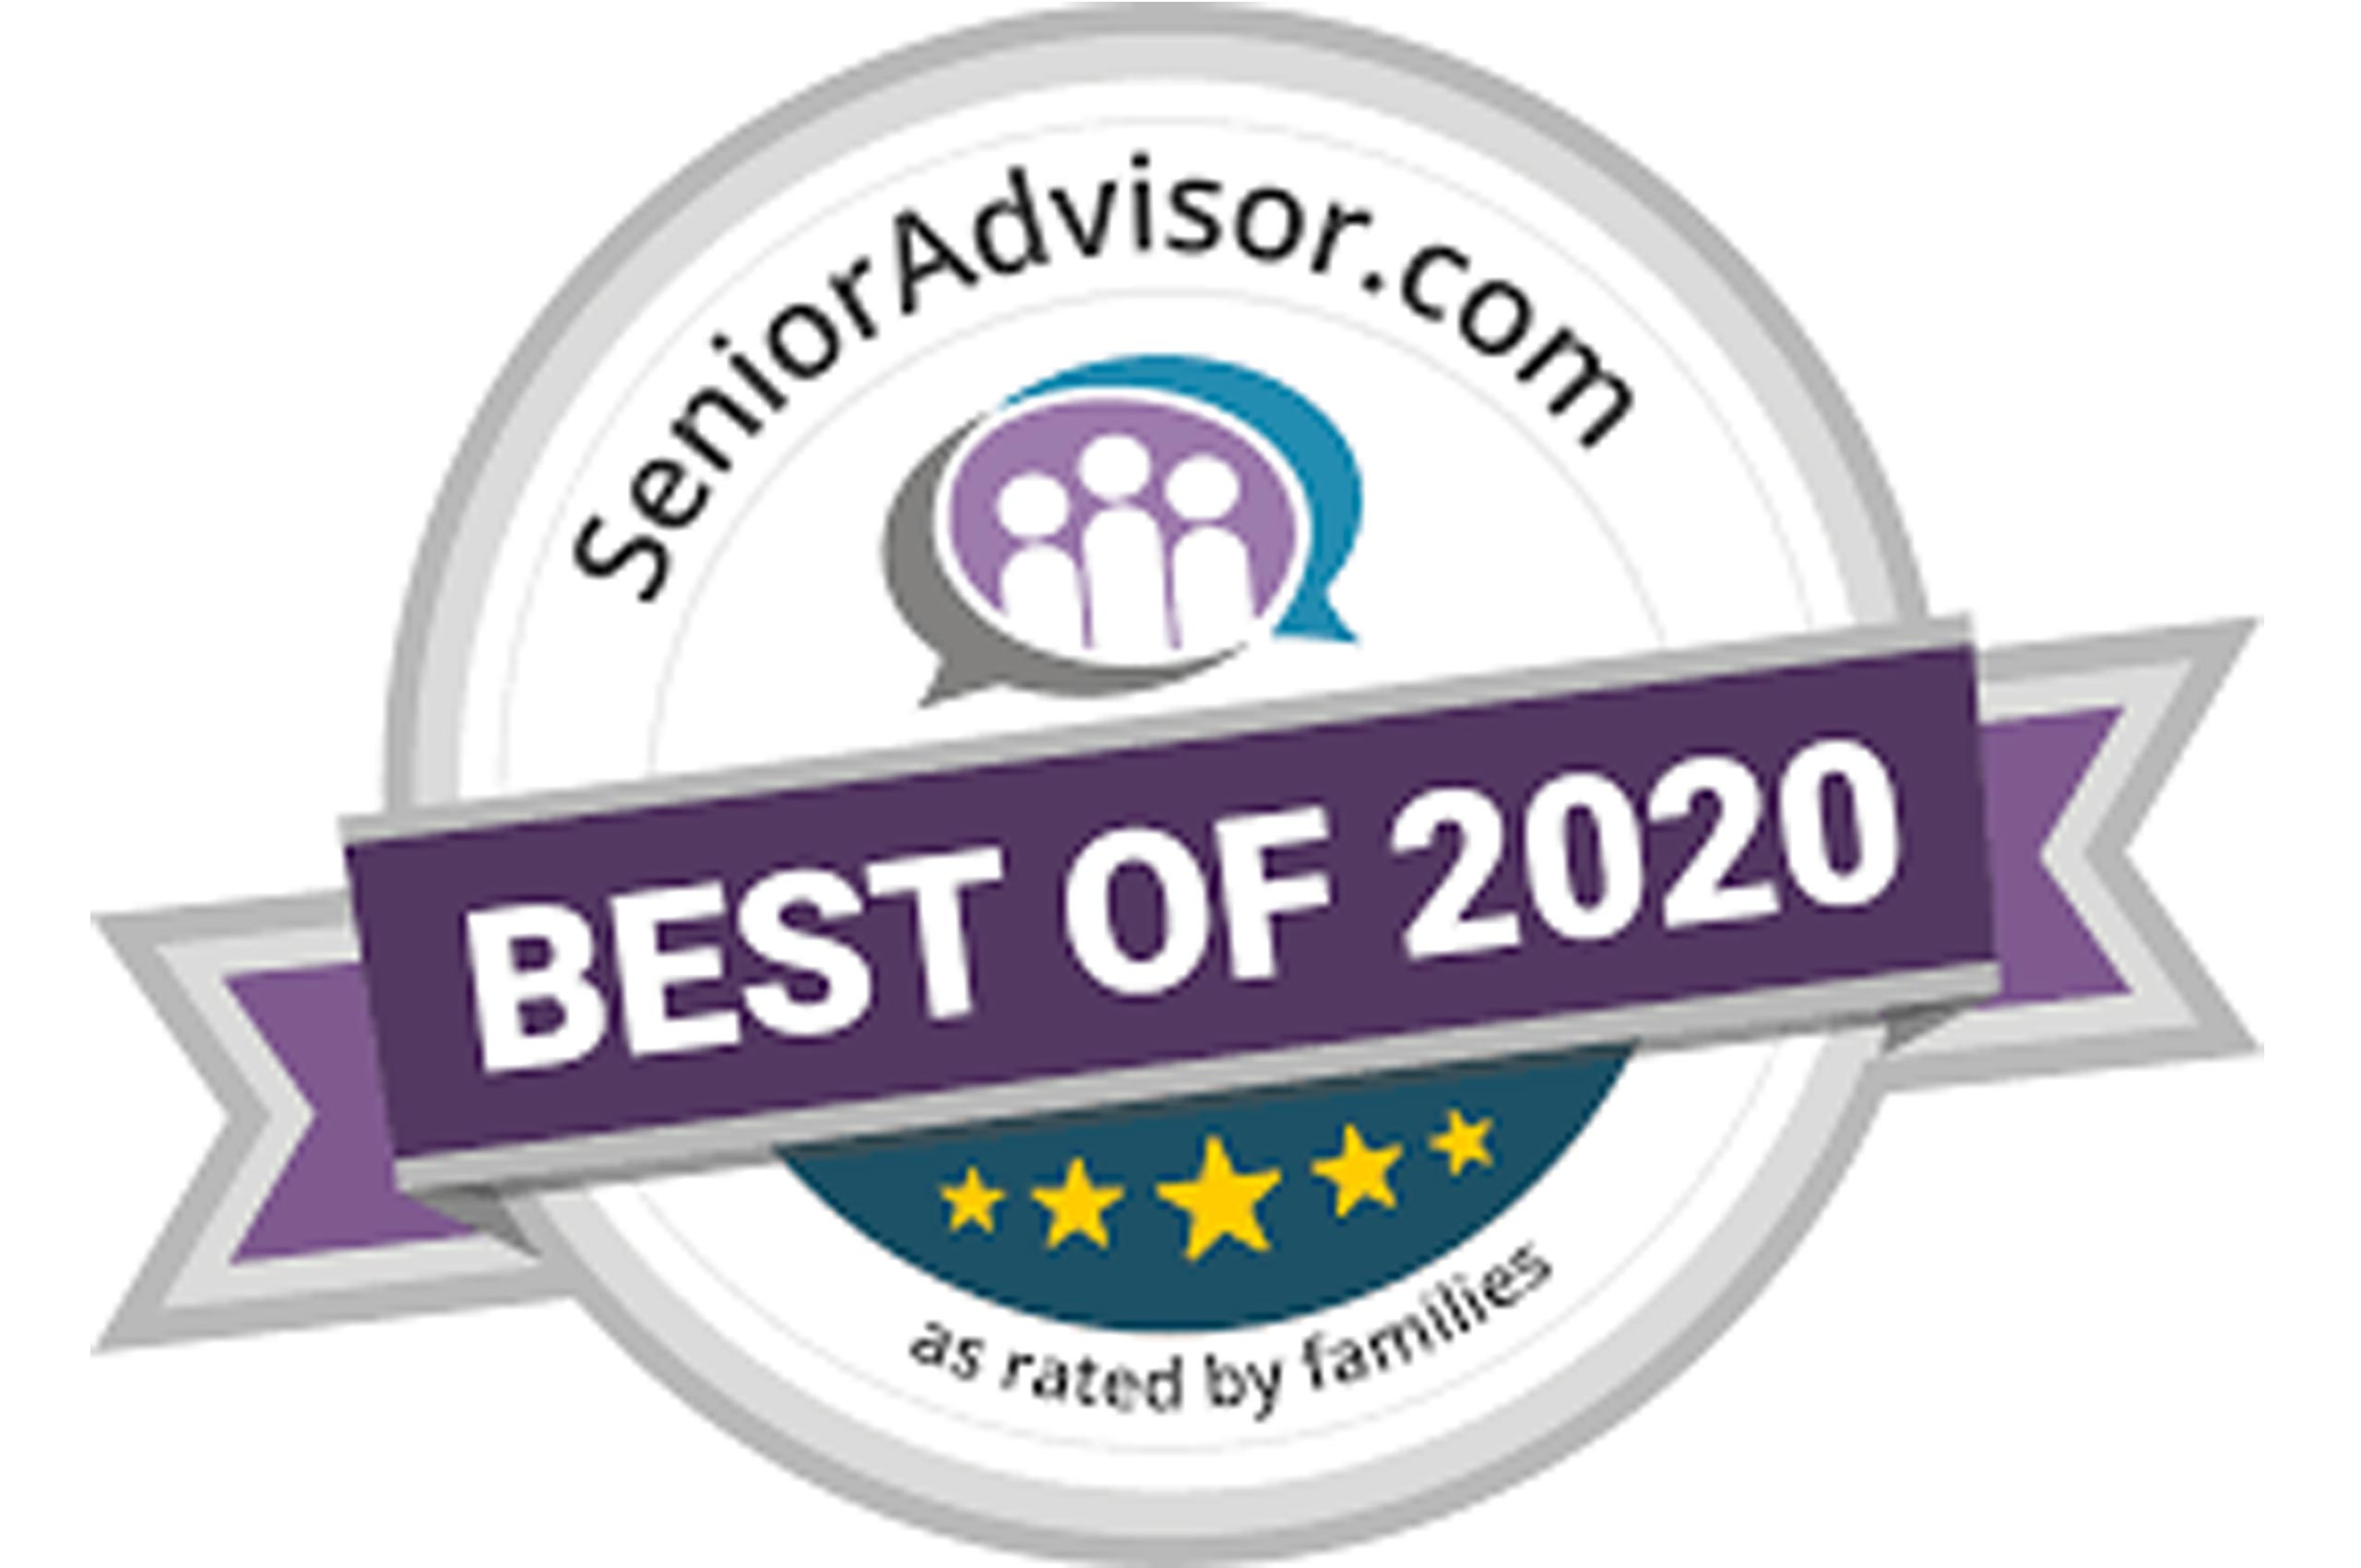 Best of 2020 Senior Advisor